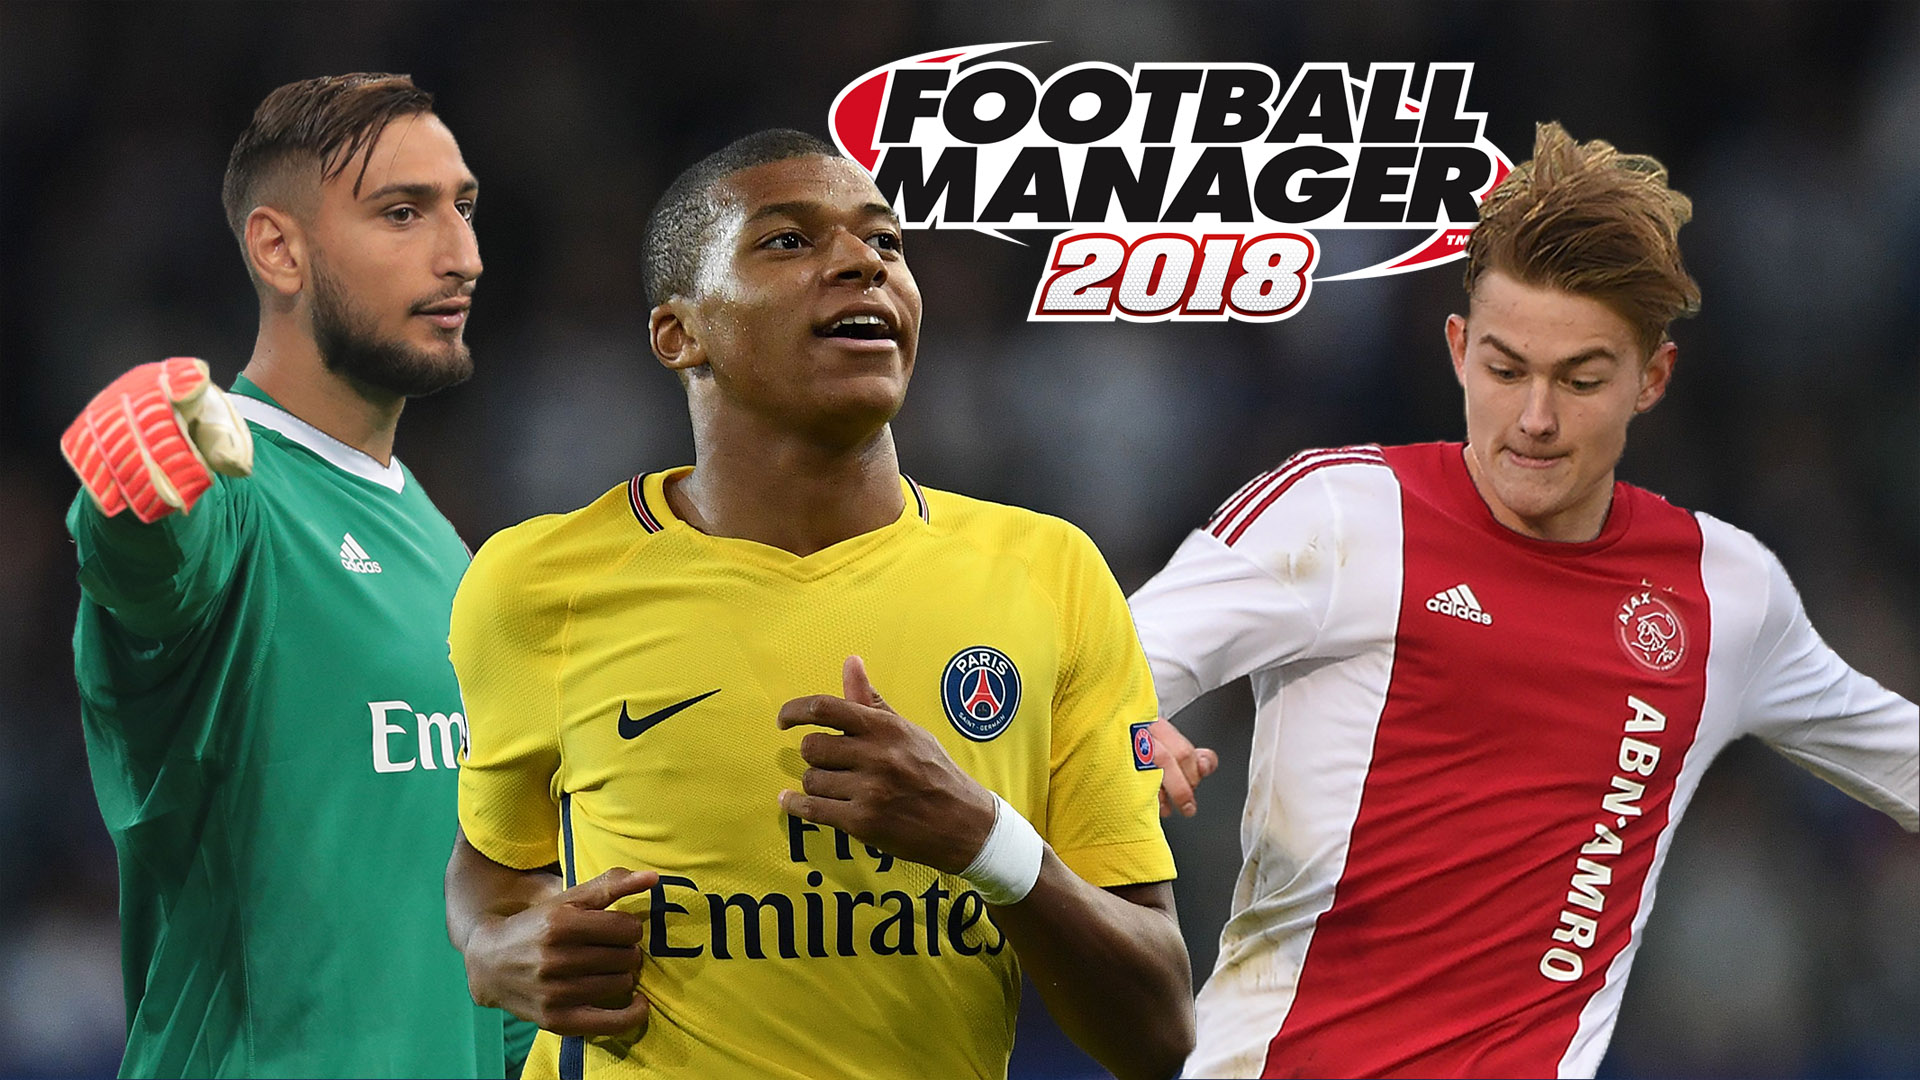 Football Manager 2018: Best wonderkid strikers, midfielders